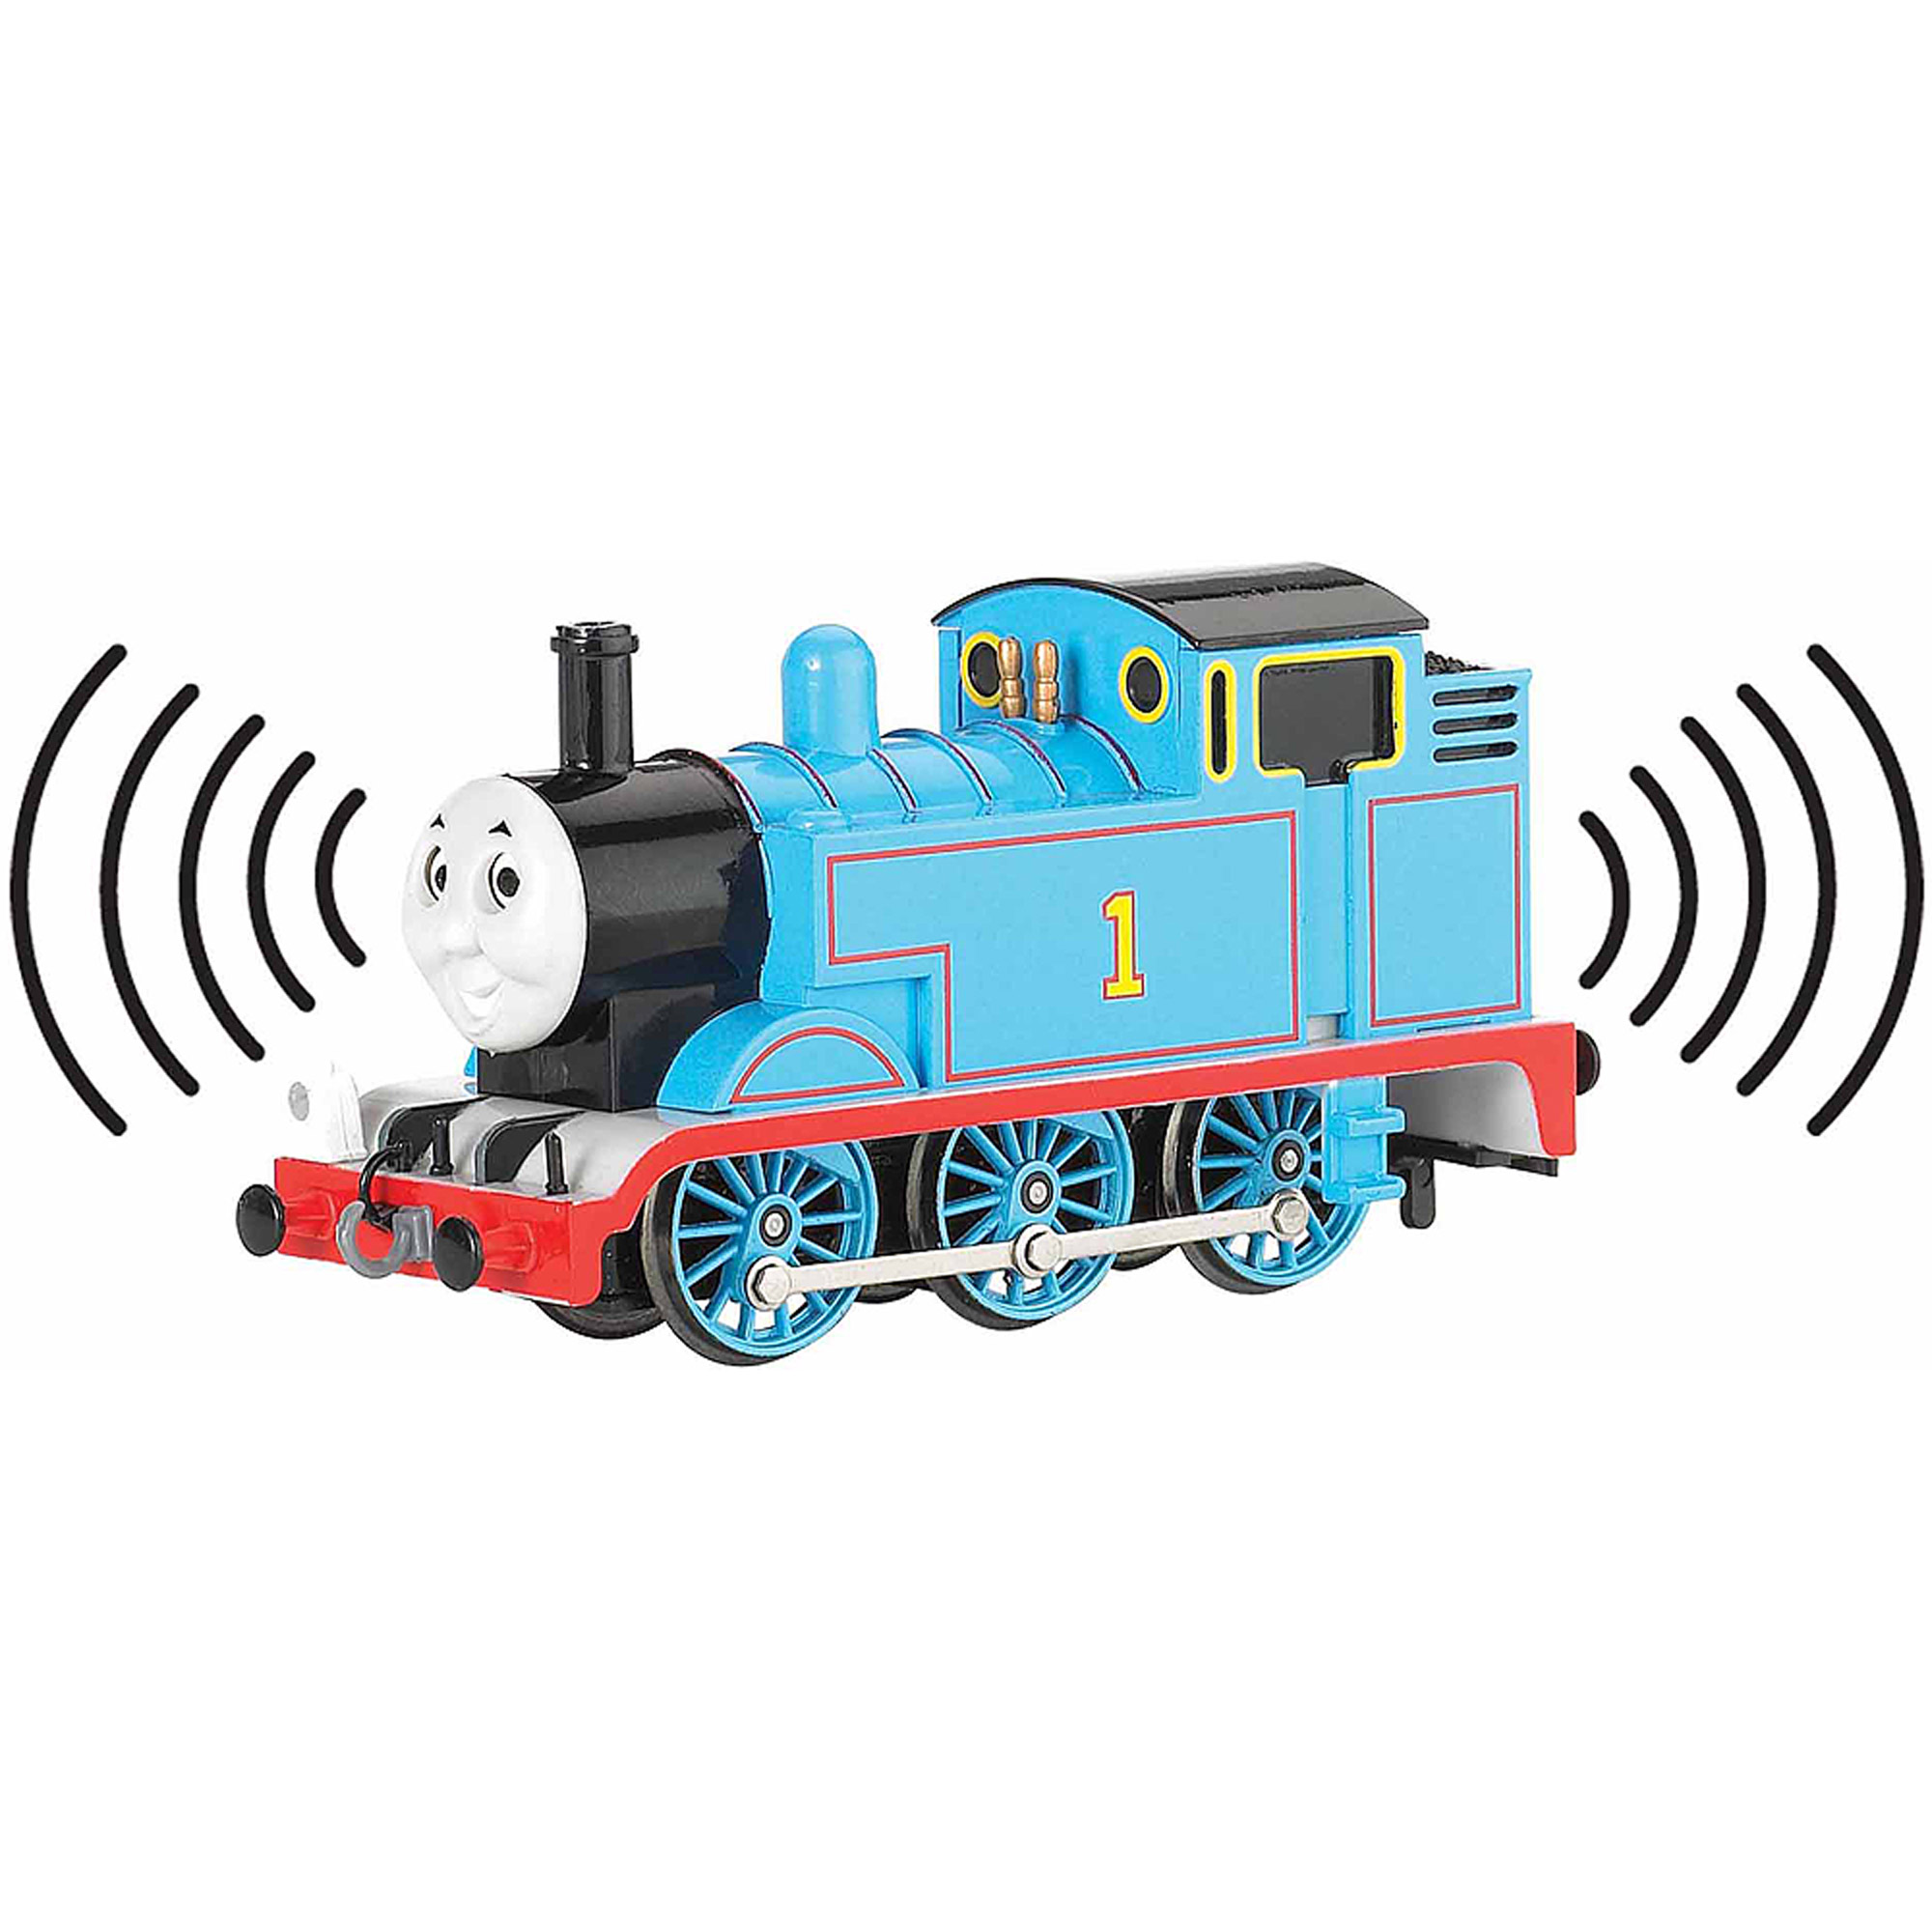 Bachmann Trains Thomas and Friends Thomas The Tank Engine Locomotive with Analog Sound and Moving Eyes, HO Scale Train